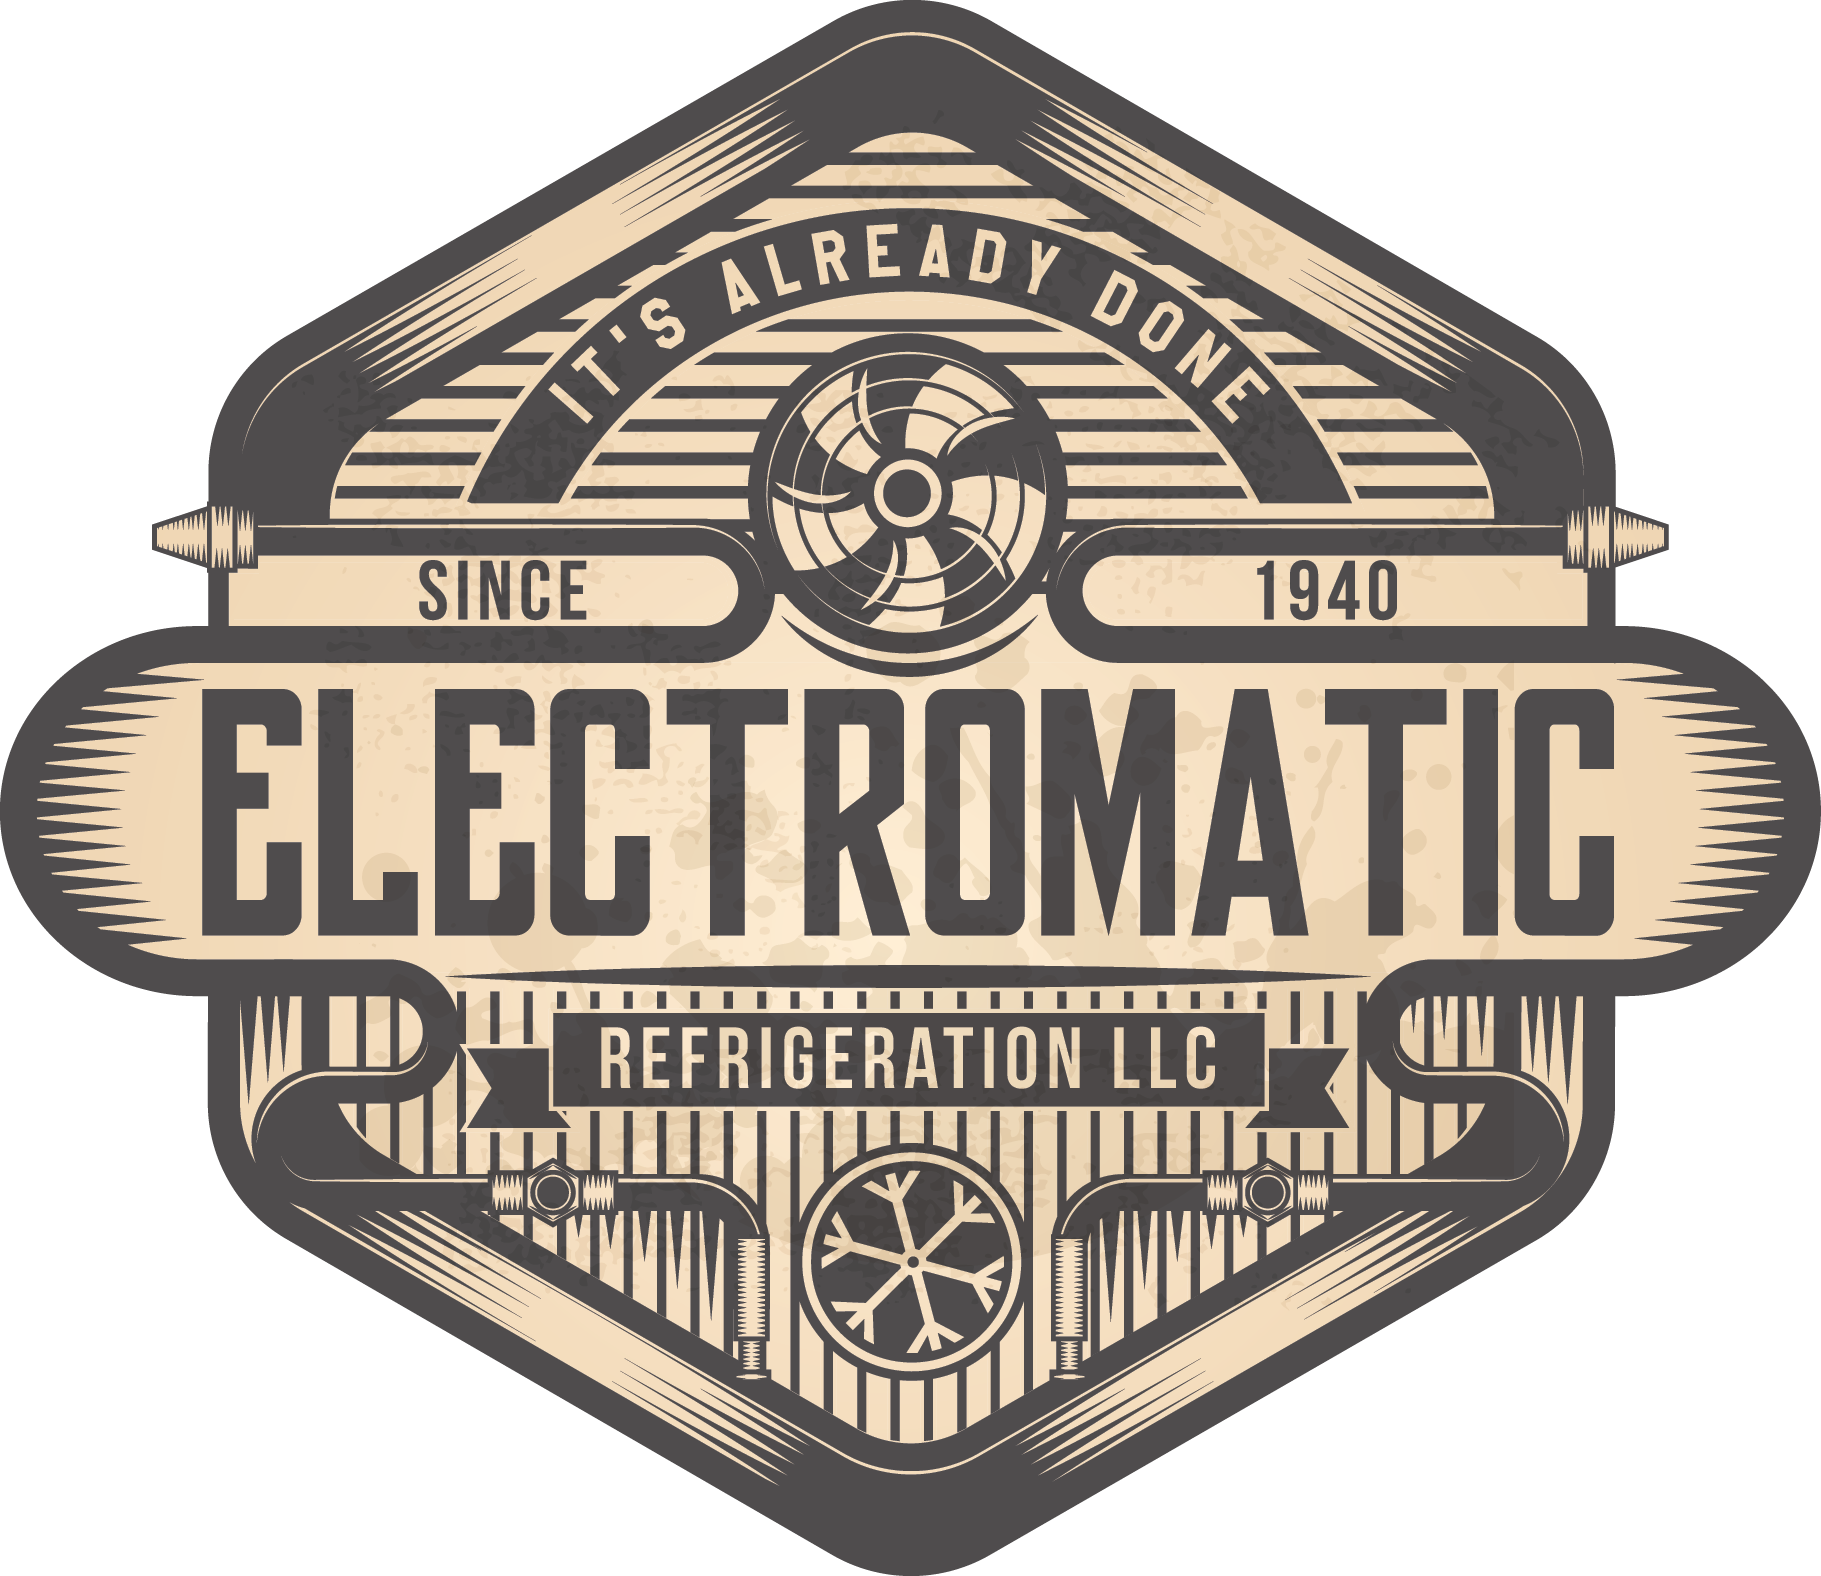 Create a vintage logo for the oldest refrigeration company in Seattle.